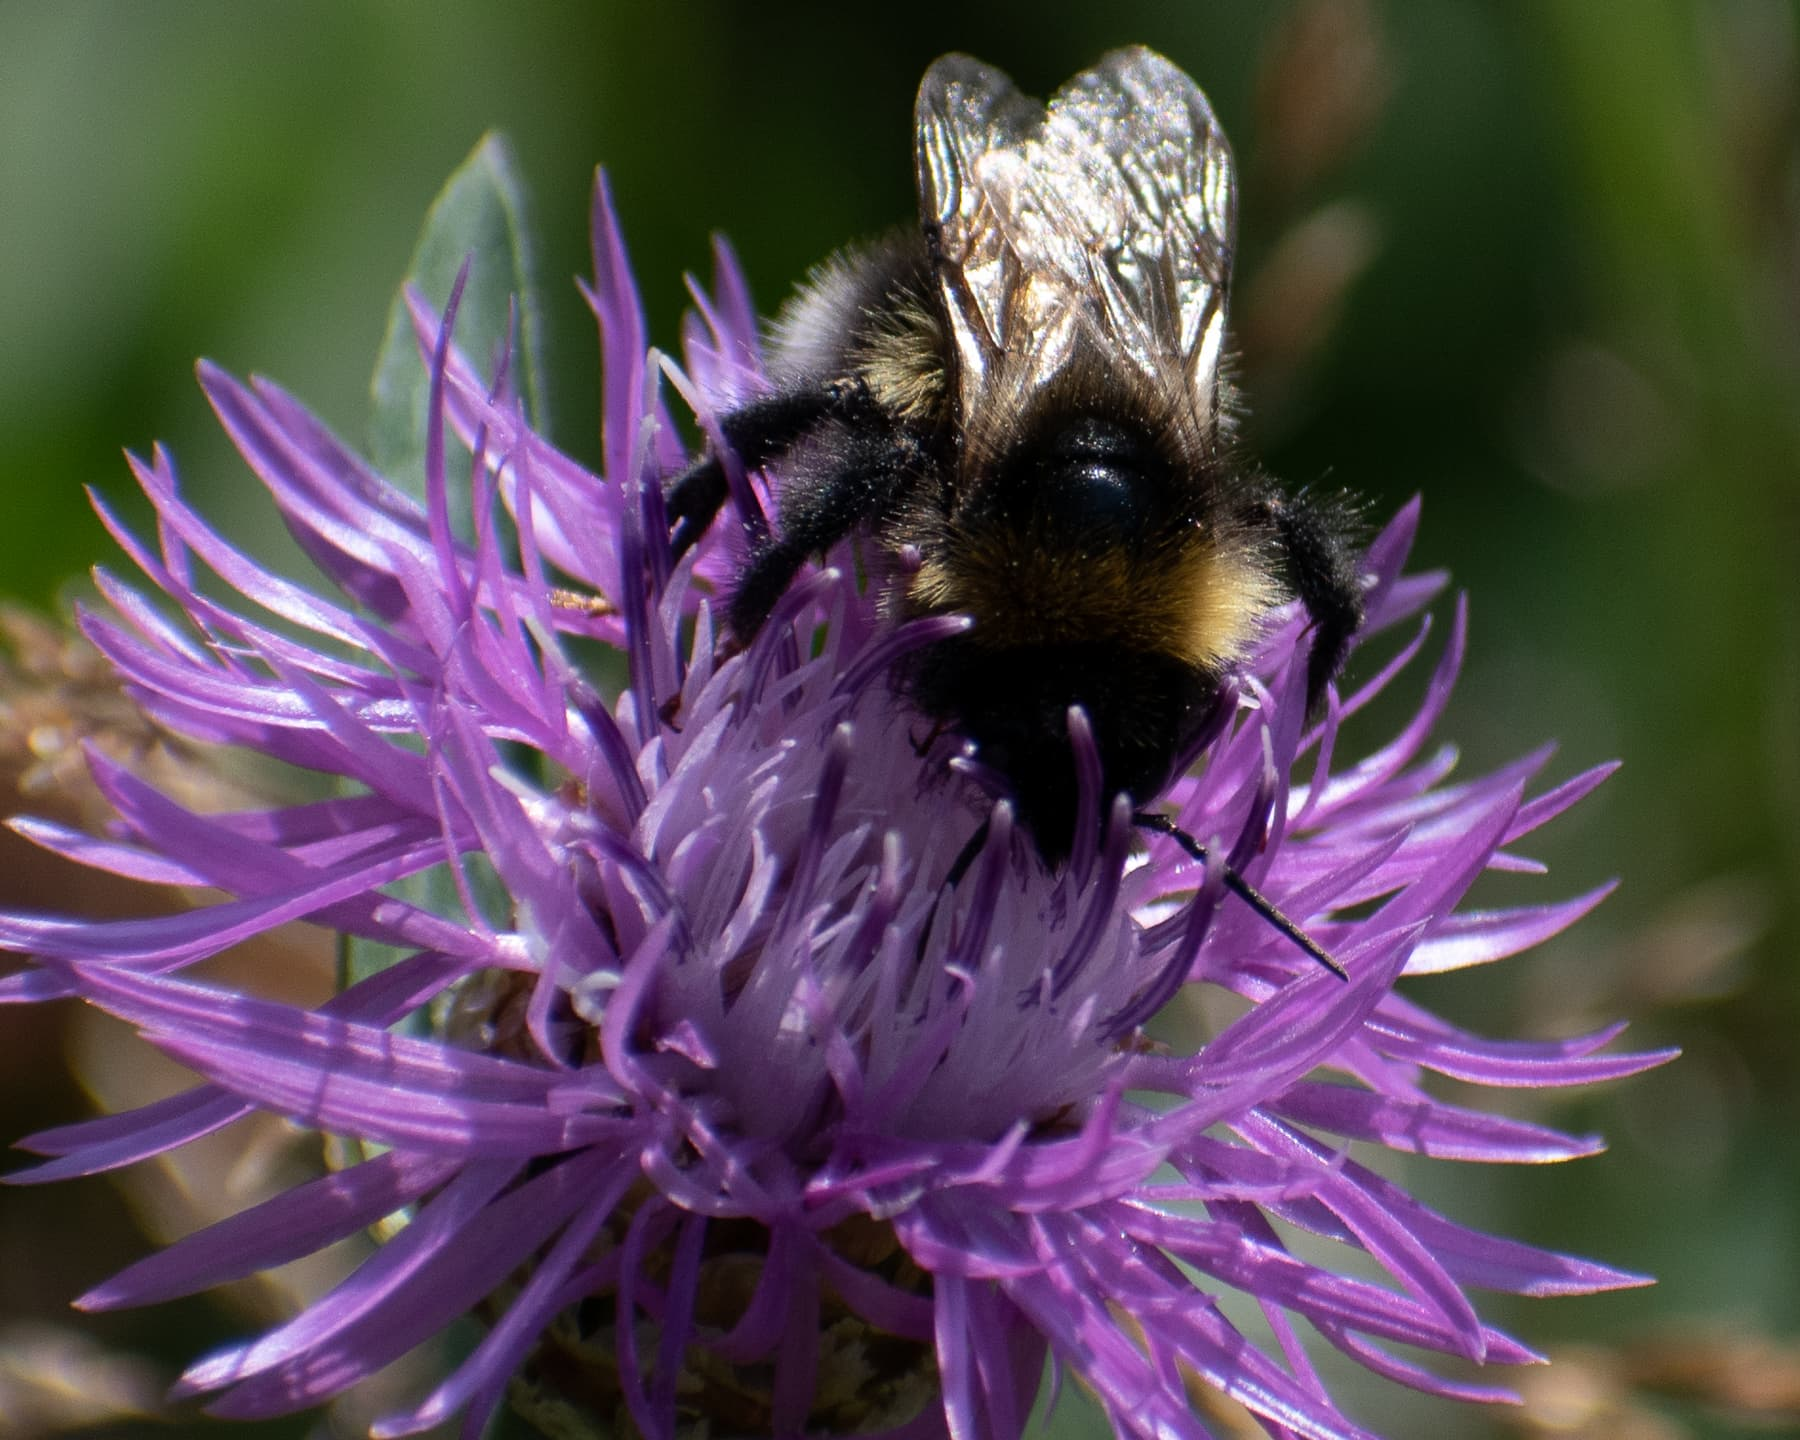 Bumblebee on Allium schoenoprasum